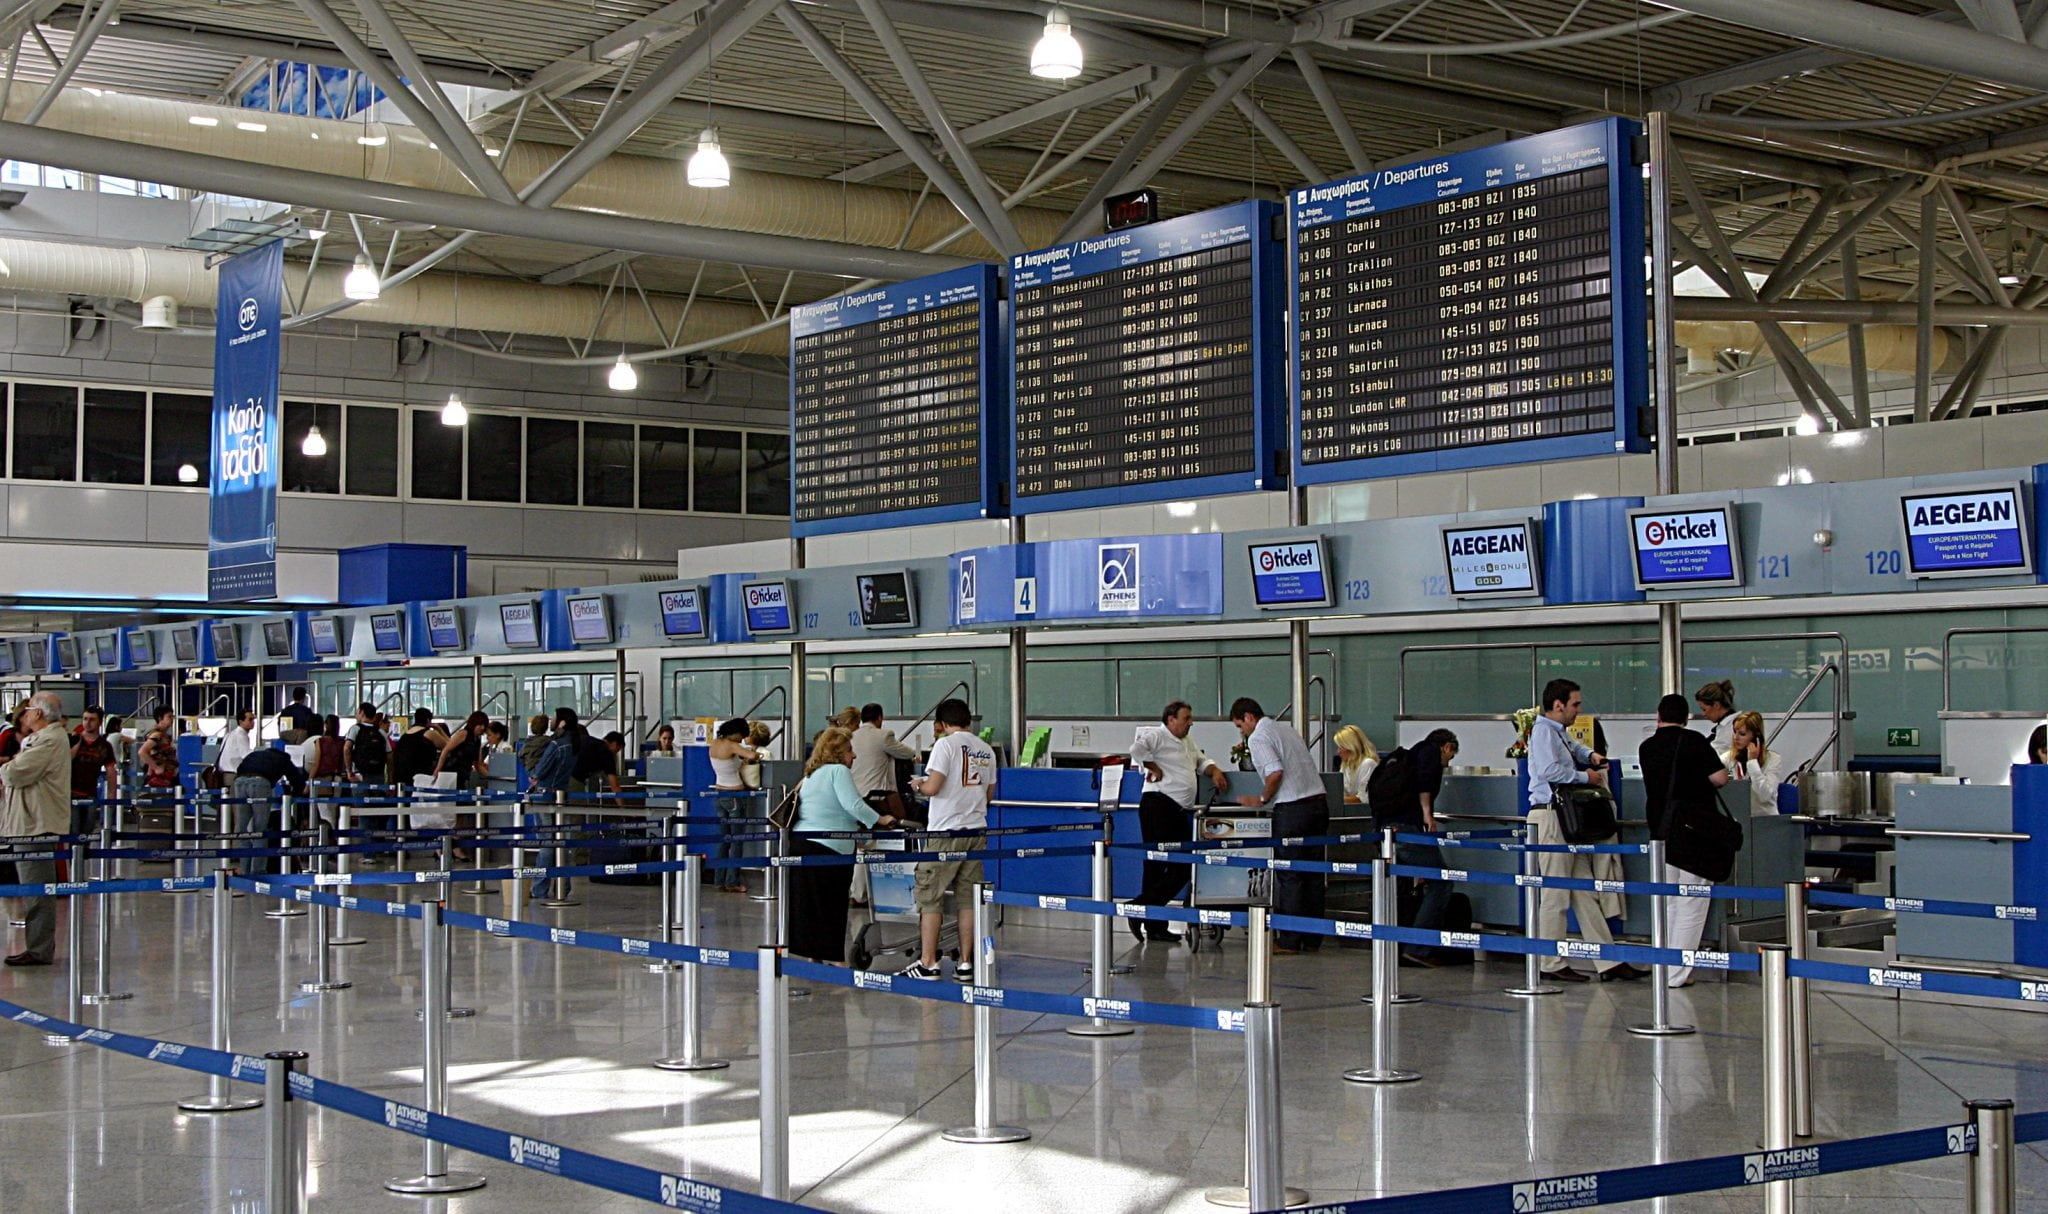 Check-in desks at Athens airport in Greece